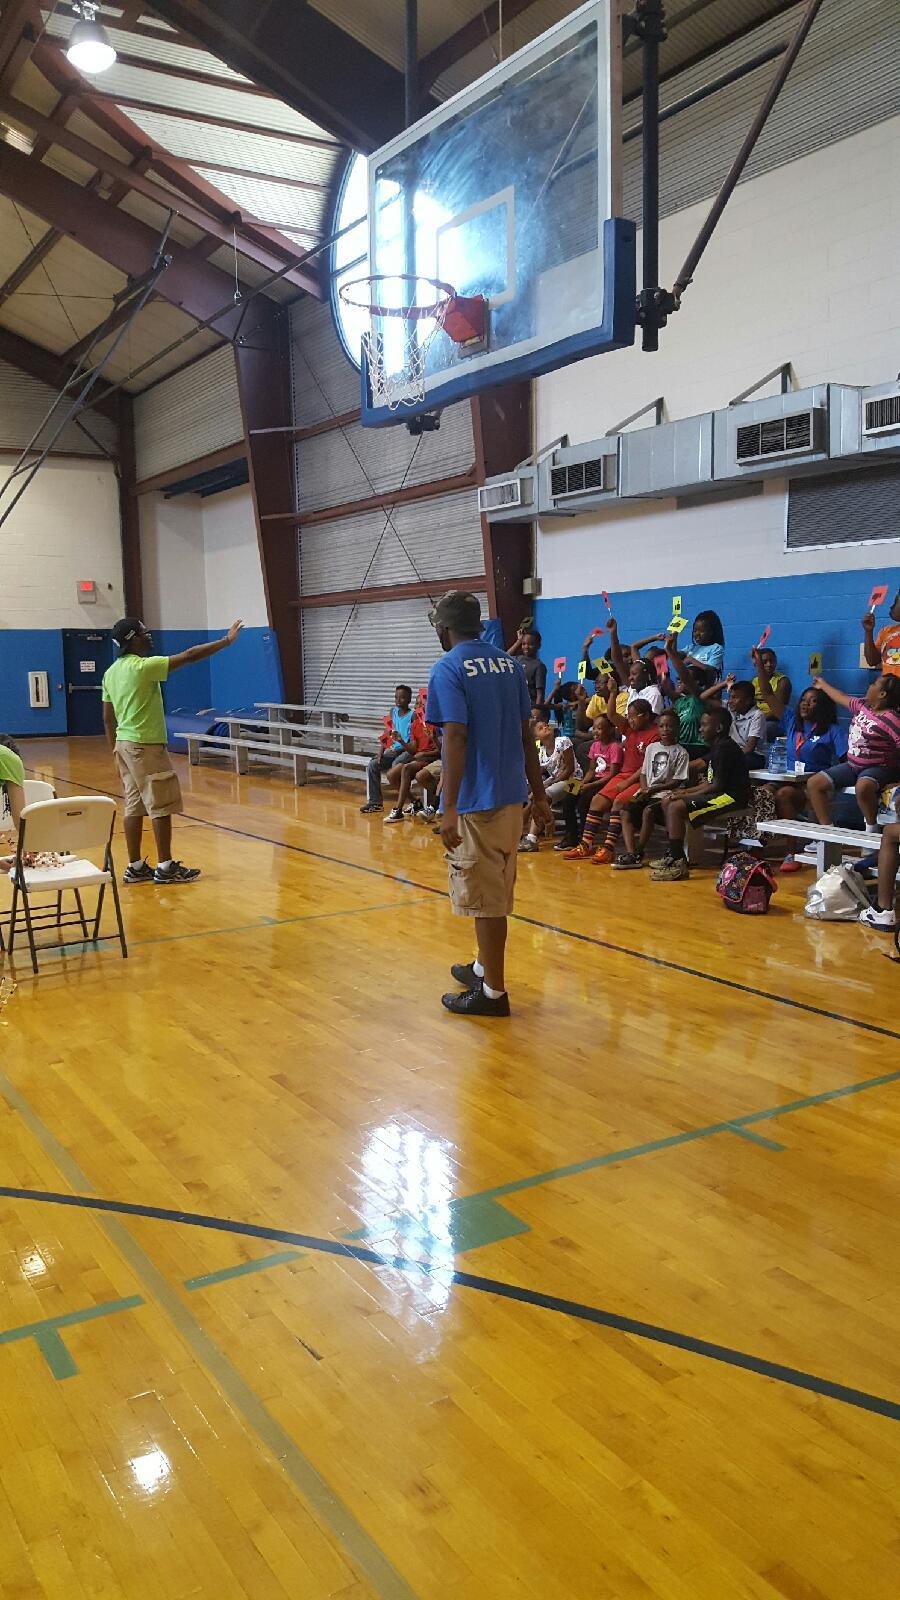 ROW INSTRUCTOR, AMOS DAVIDSON, LEADS THE KIDS THROUGH AN EXPLANATION OF THE OUR WEEK 1 ENGINEERING LESSON.